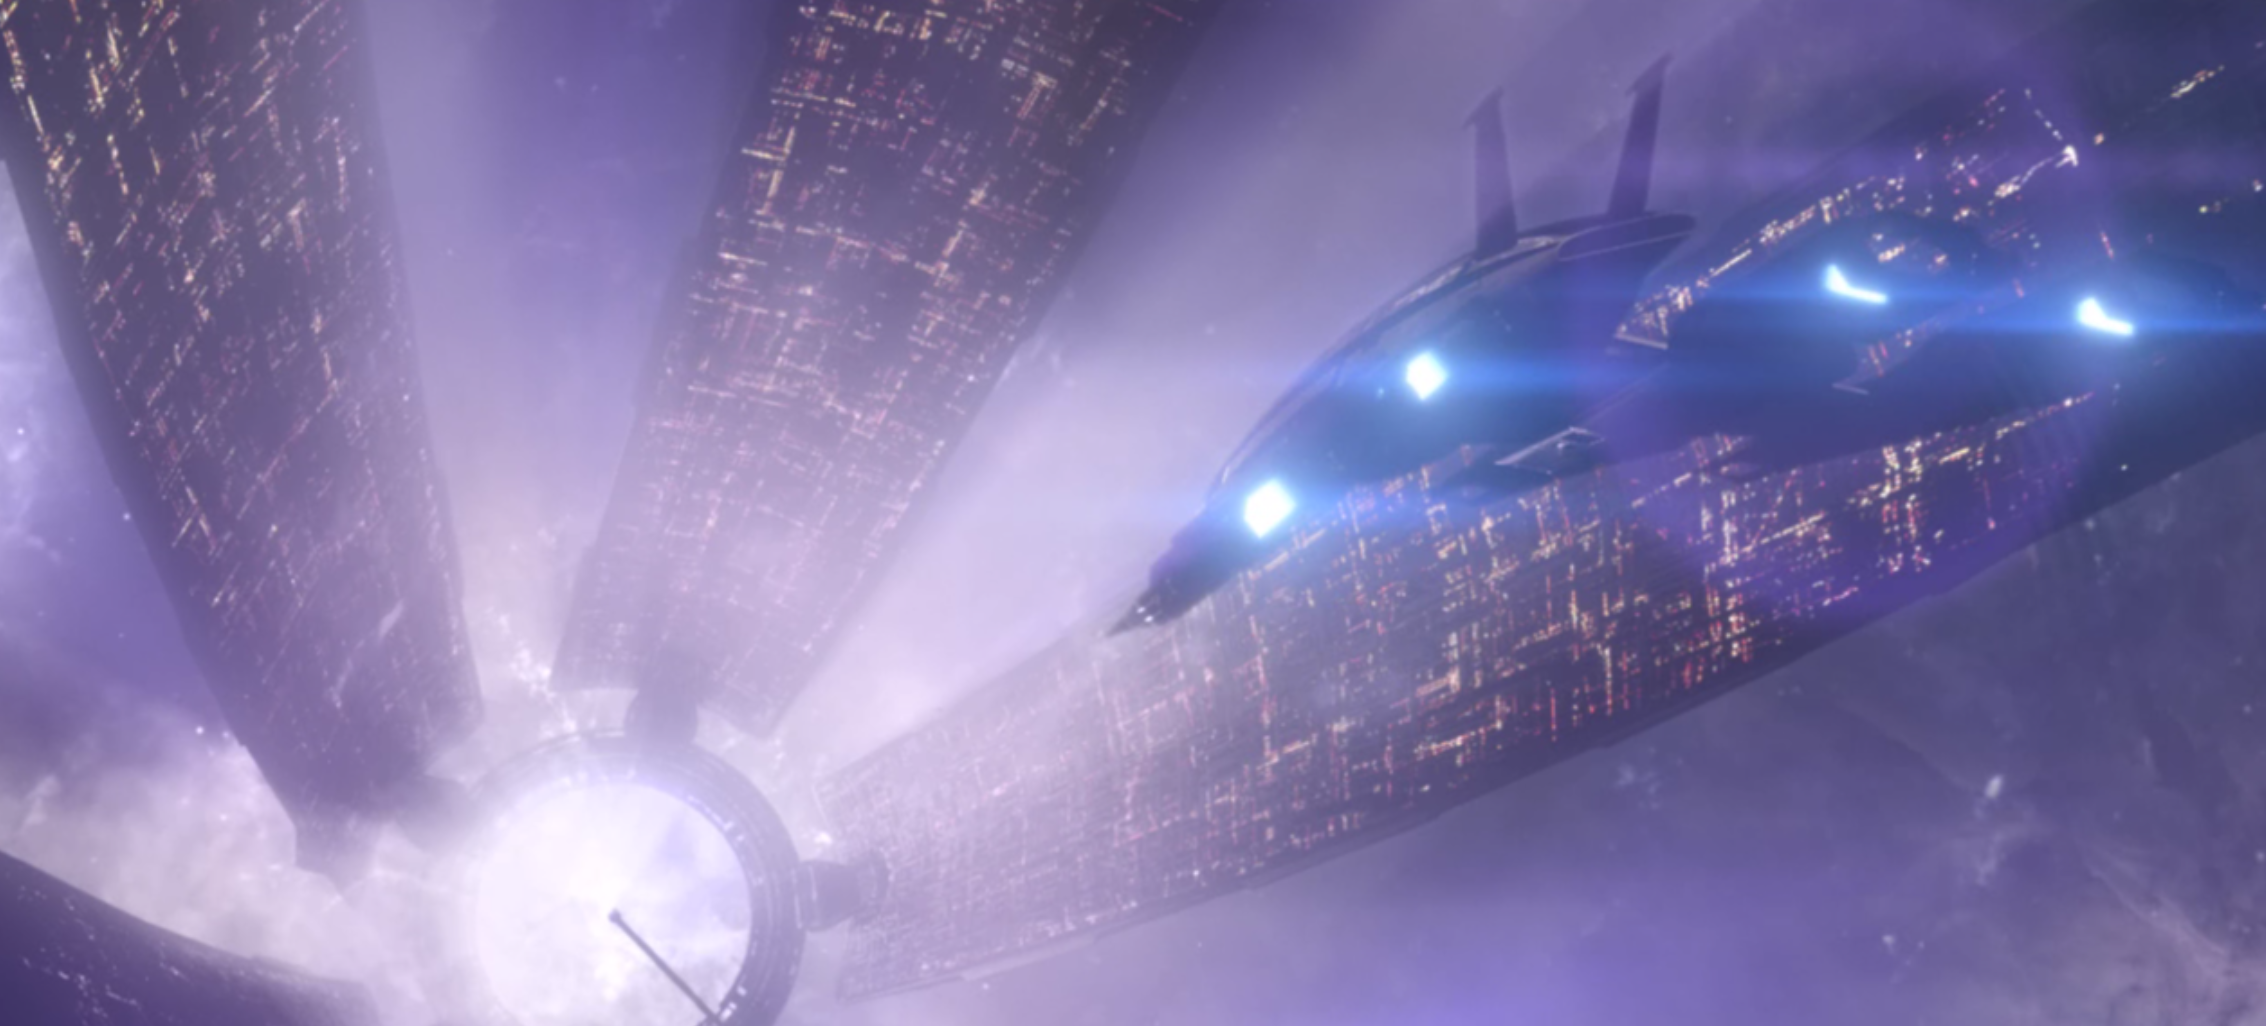 A screenshot of Commander Shepard's ship The Normandy landing at the Citadel Space Station in the first game.